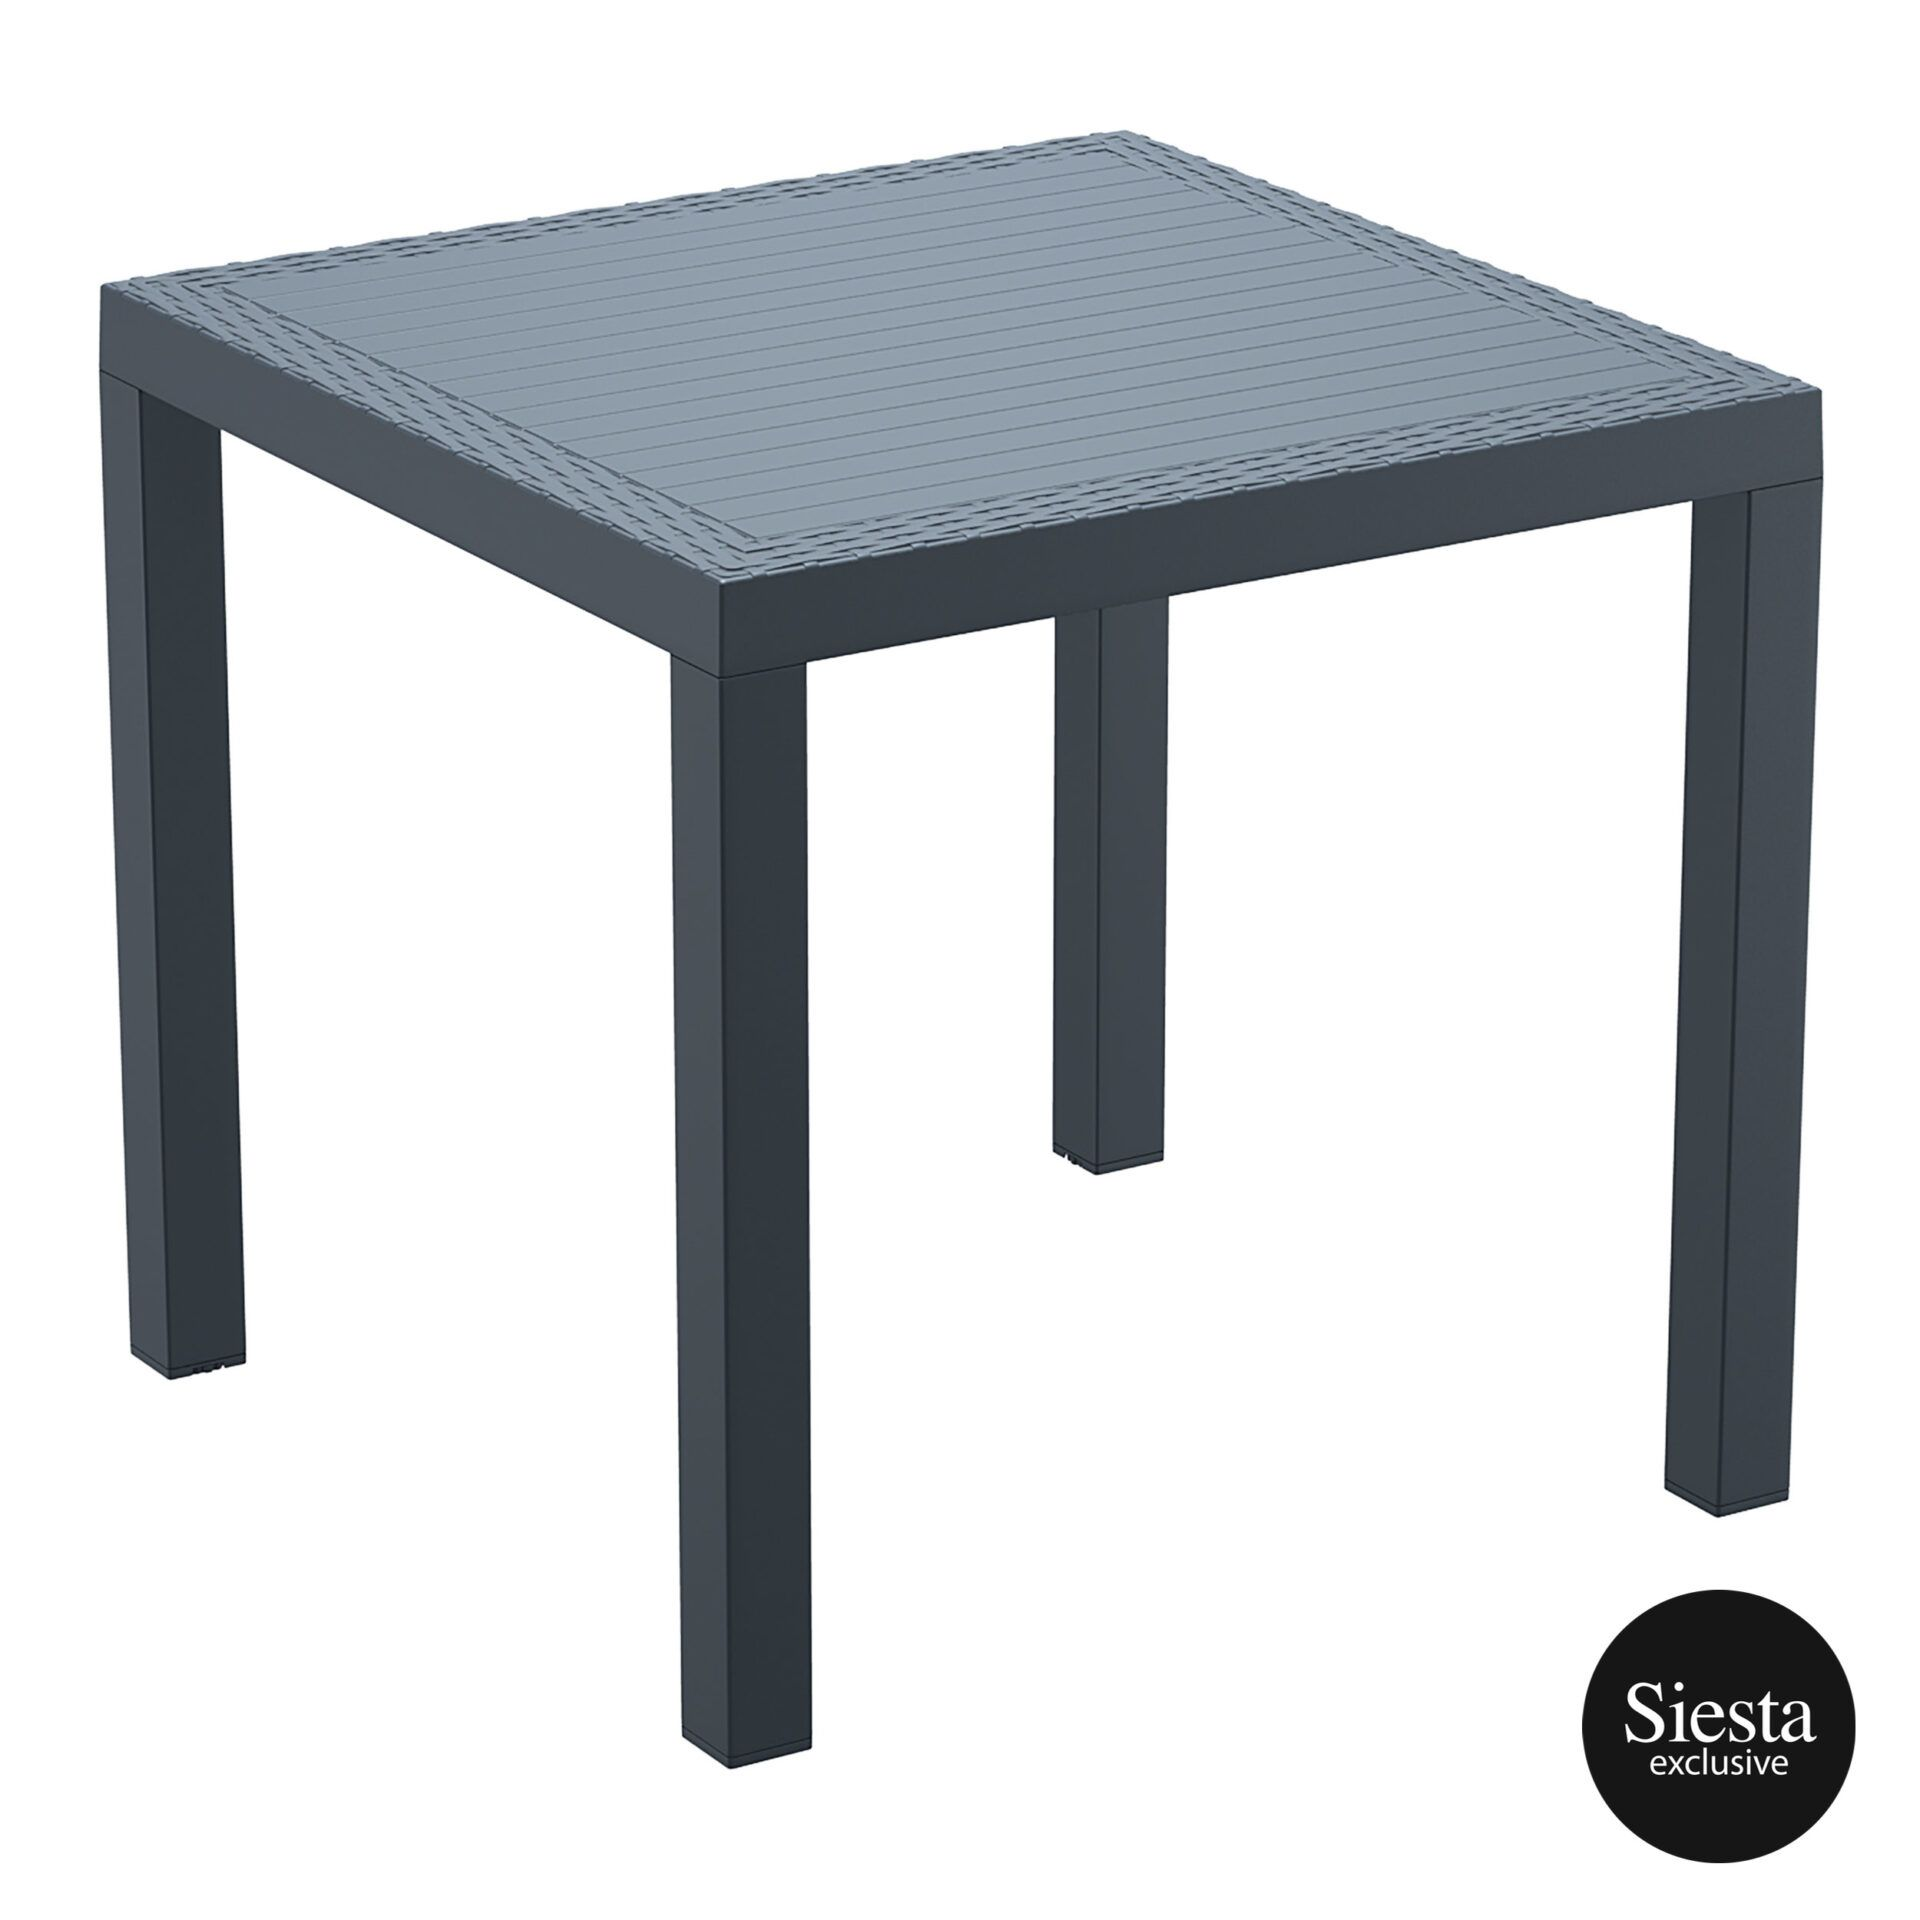 outdoor resin rattan cafe plastic top bali table 80 darkgrey front side 2